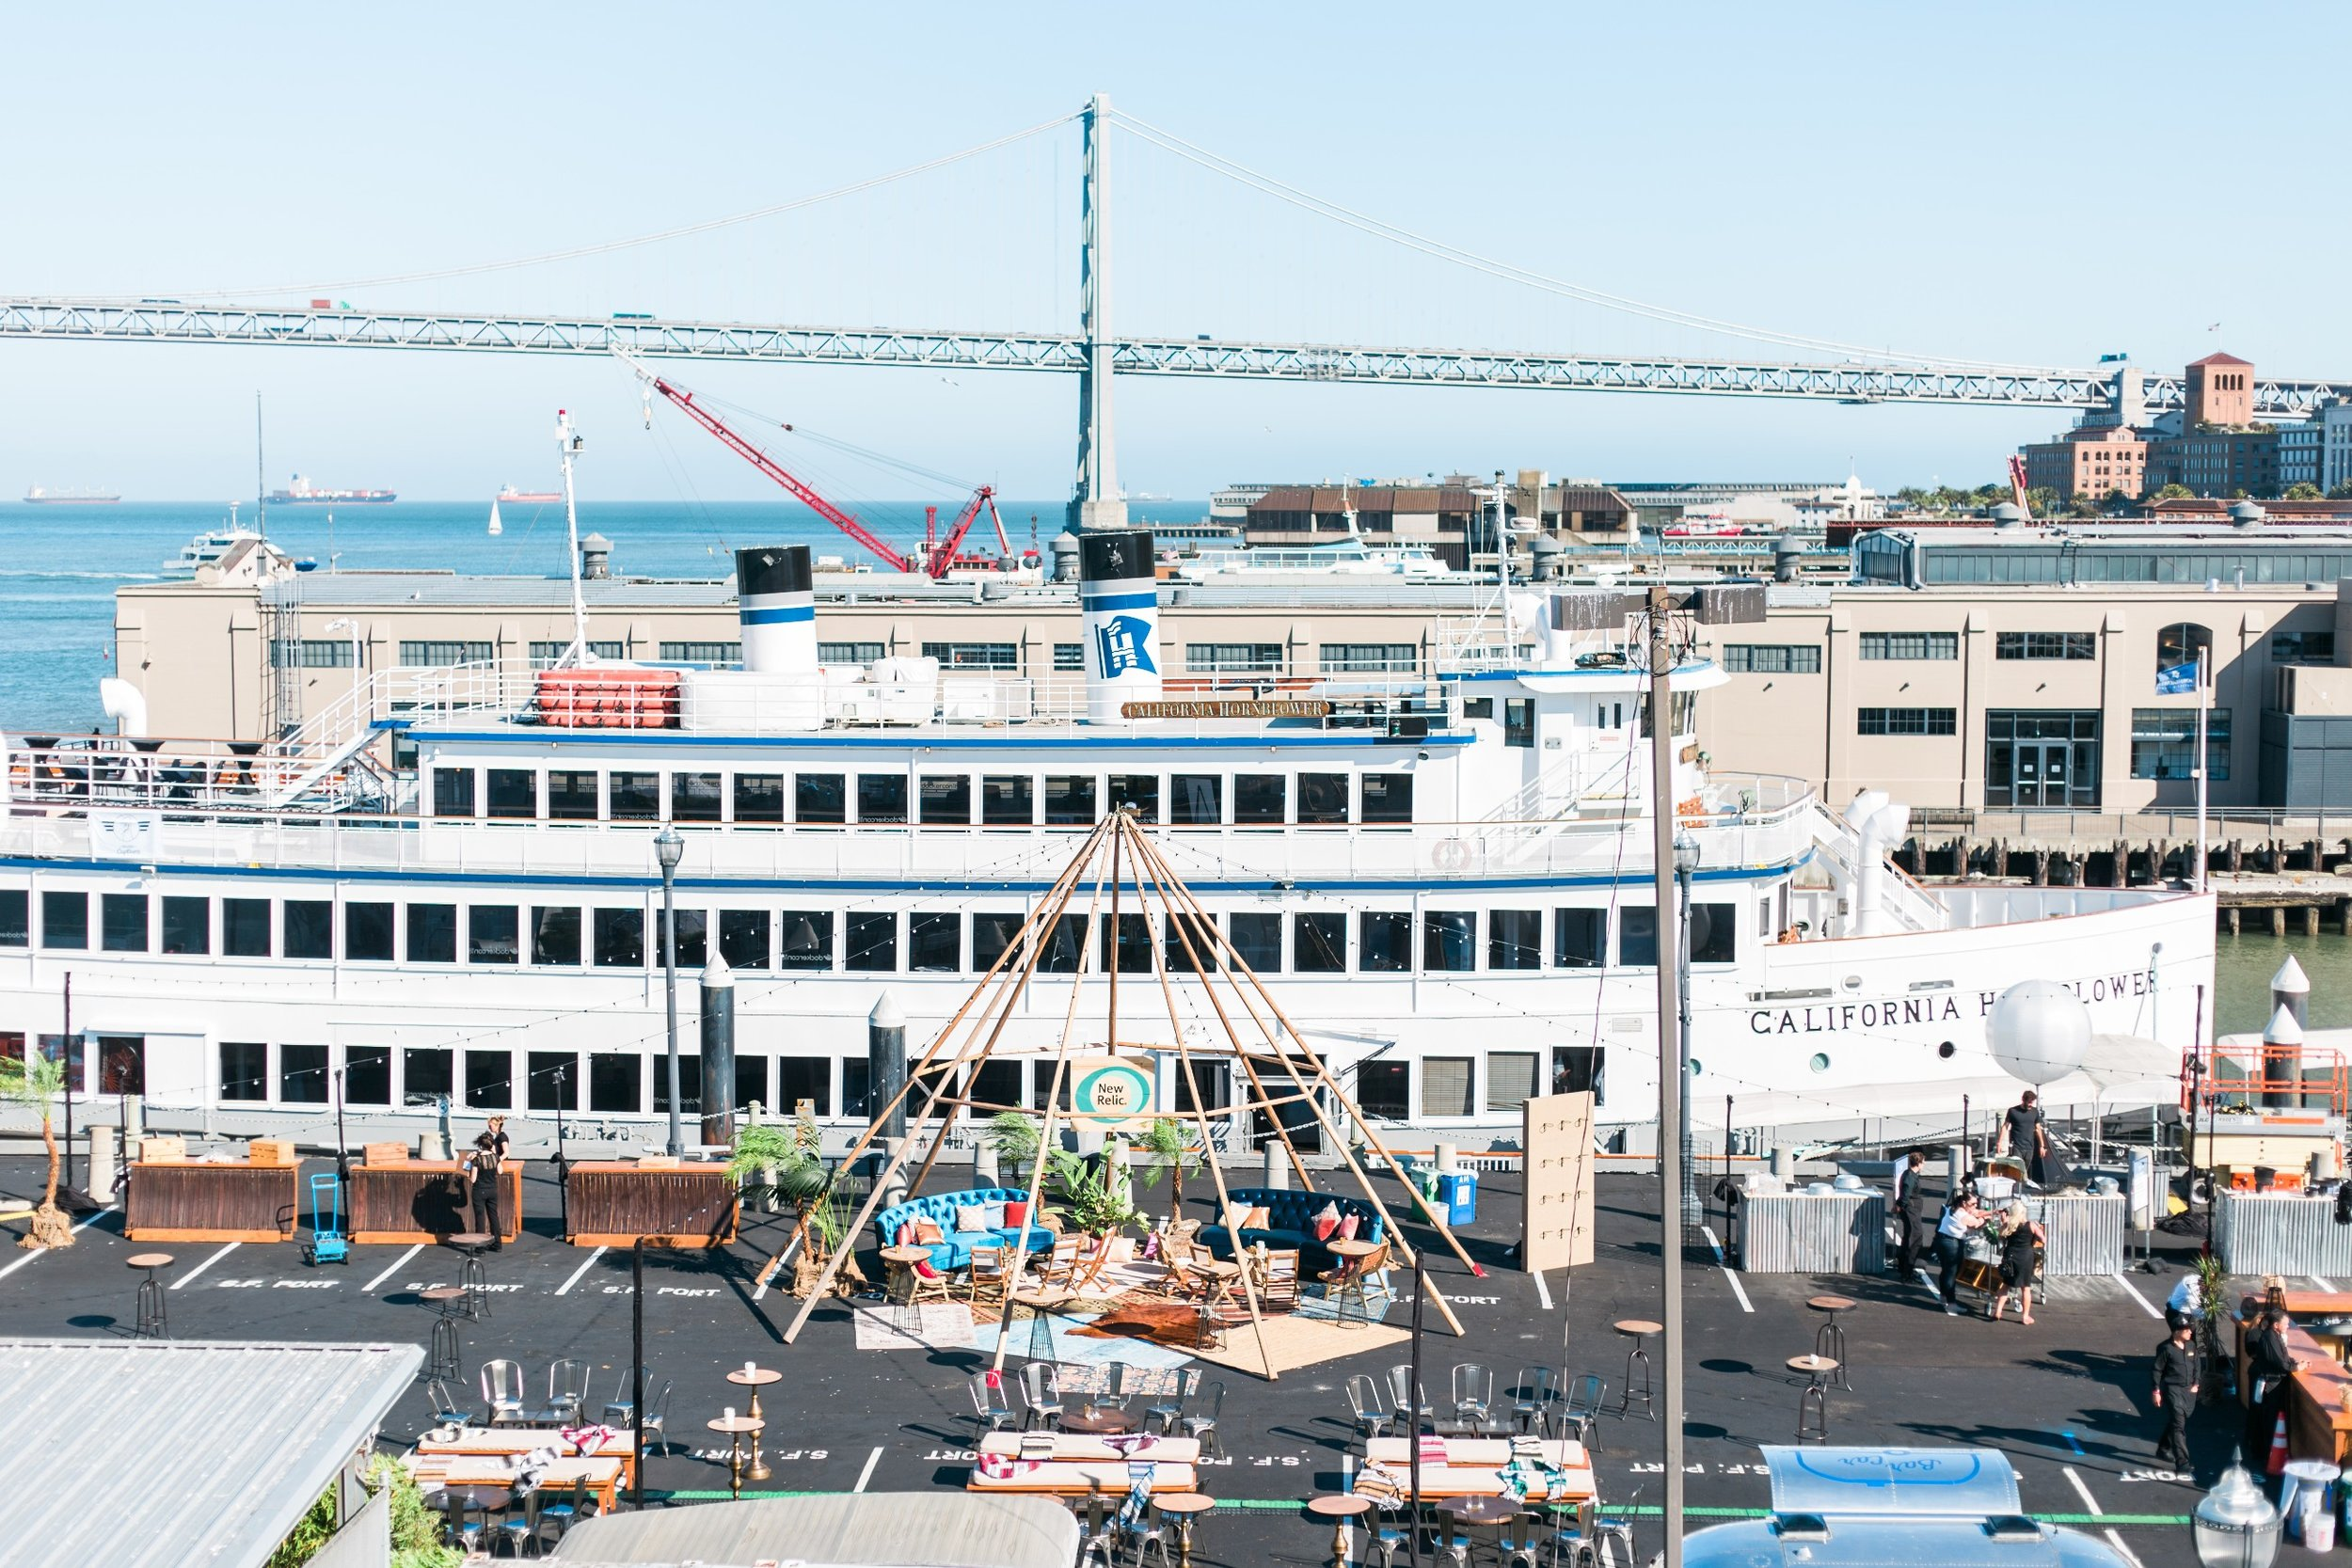 Best-Corporate-Venue-San-Francisco-Event-Photographer-Hornblower-SF-by-JBJ-PIctures (10).jpg